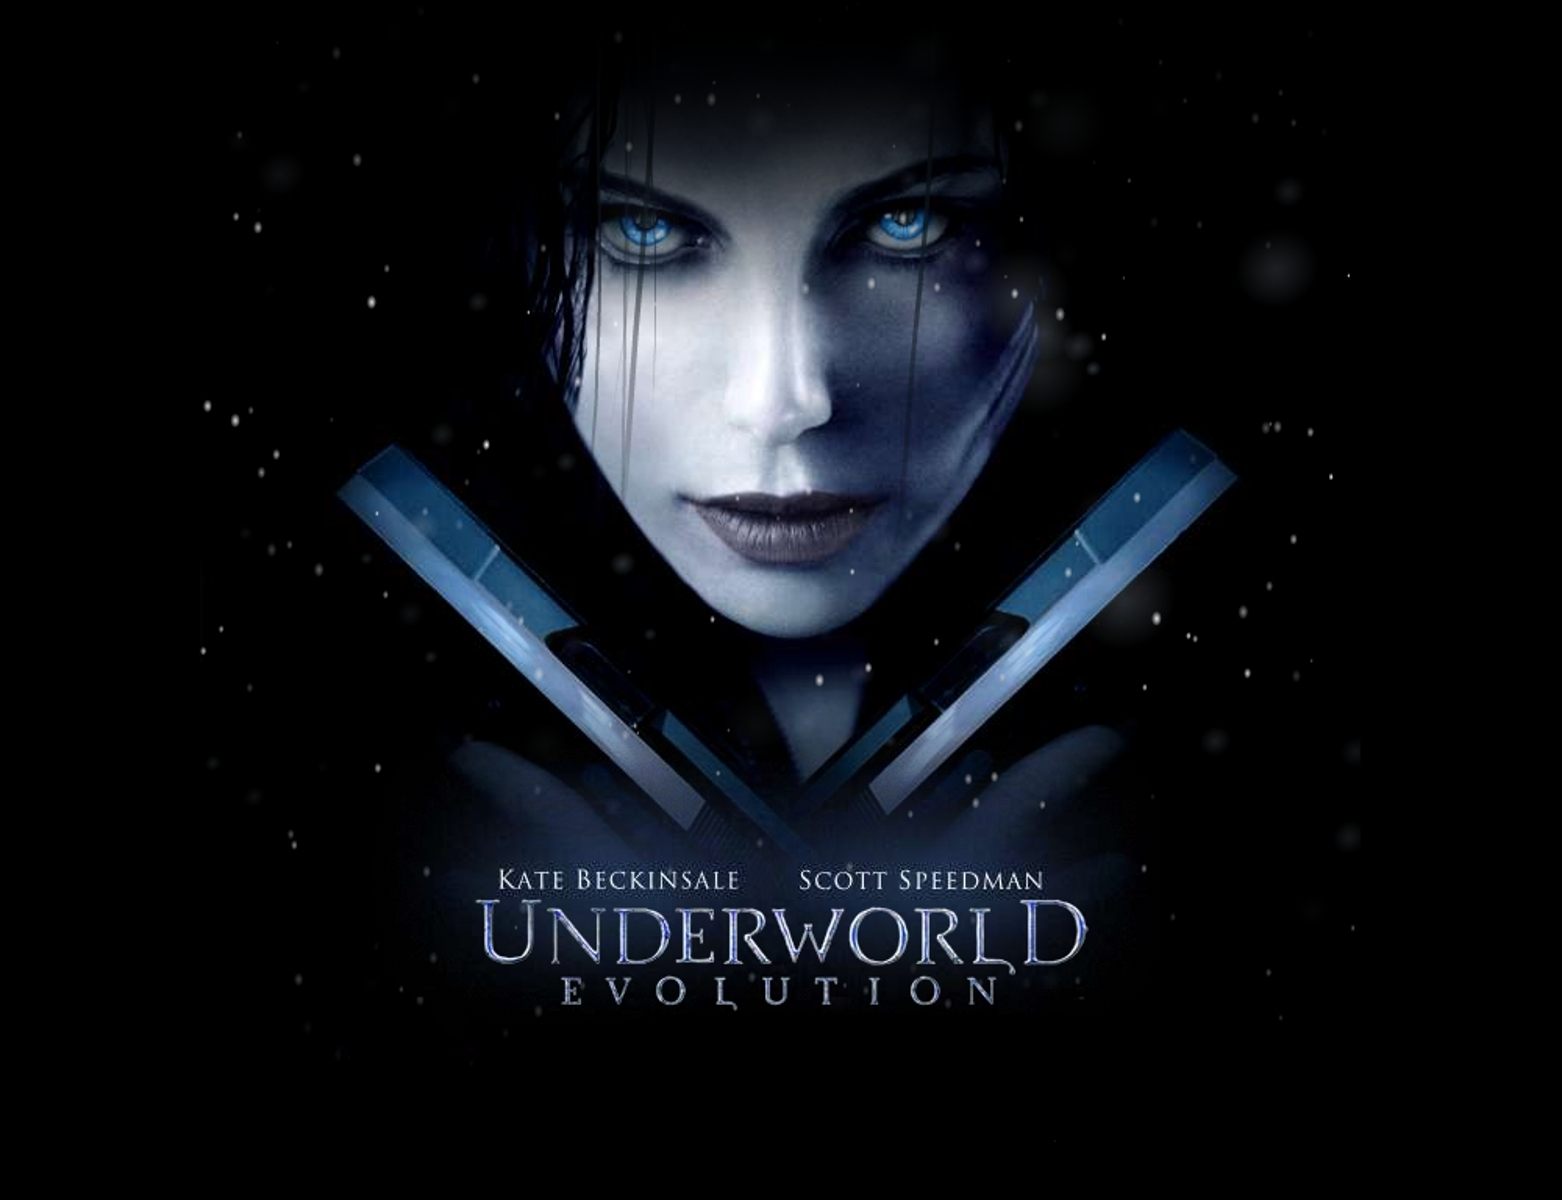 http://onlyhdwallpapers.com/wallpaper/underworld_evolution_op_herethis_is_the_last_of_those_thathave_desktop_1562x1200_wallpaper-158984.jpeg